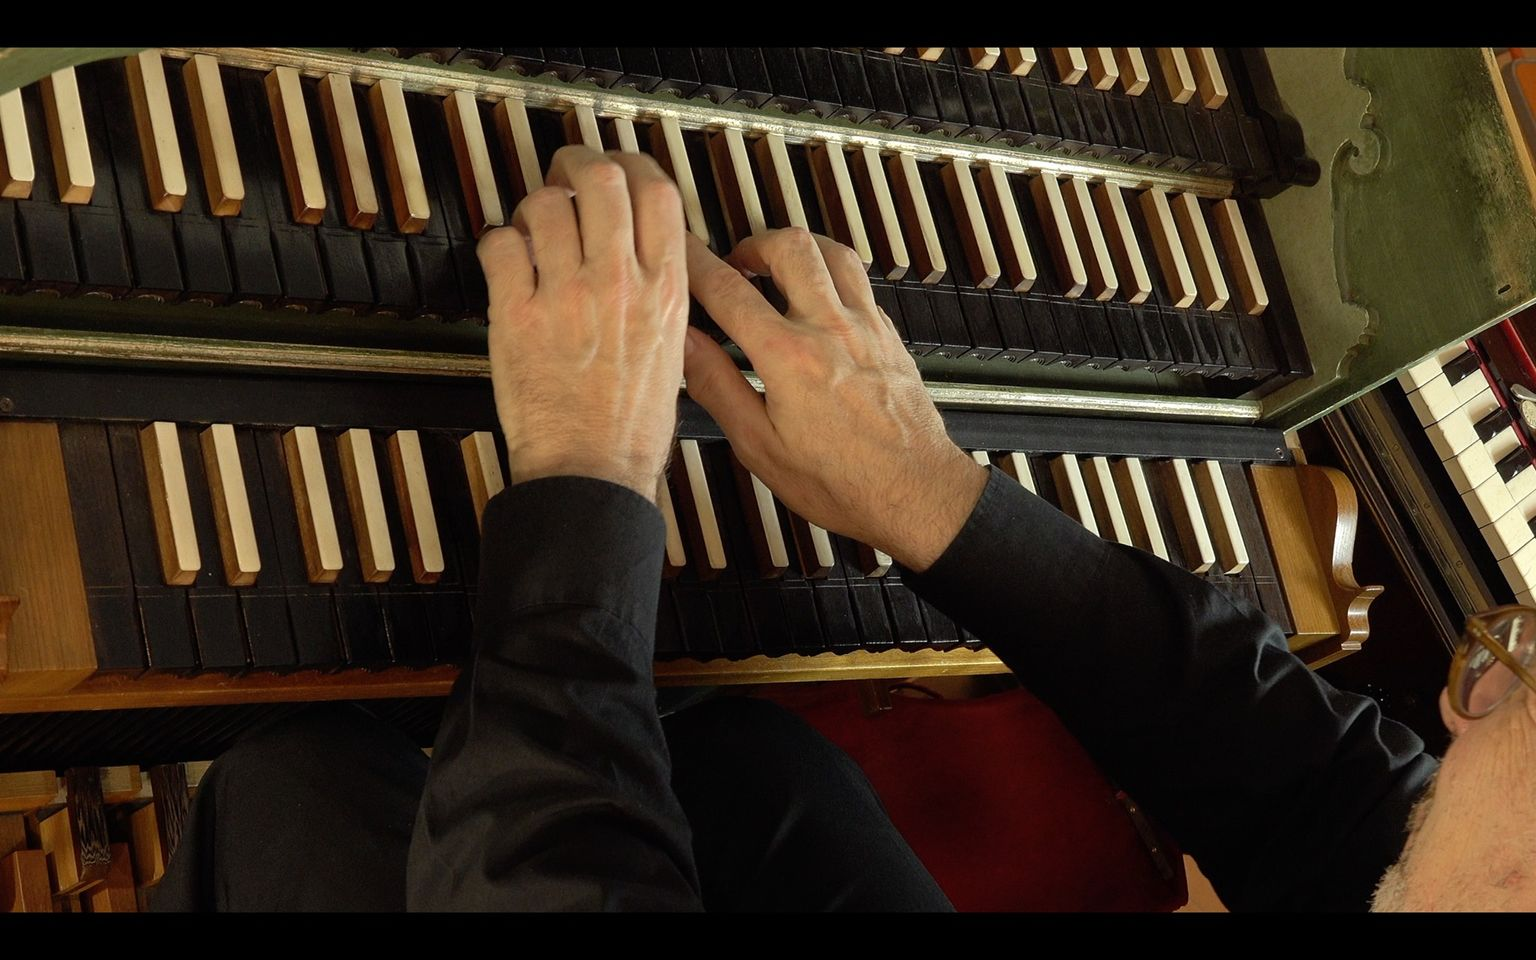 Are you hearing what the organist plays?